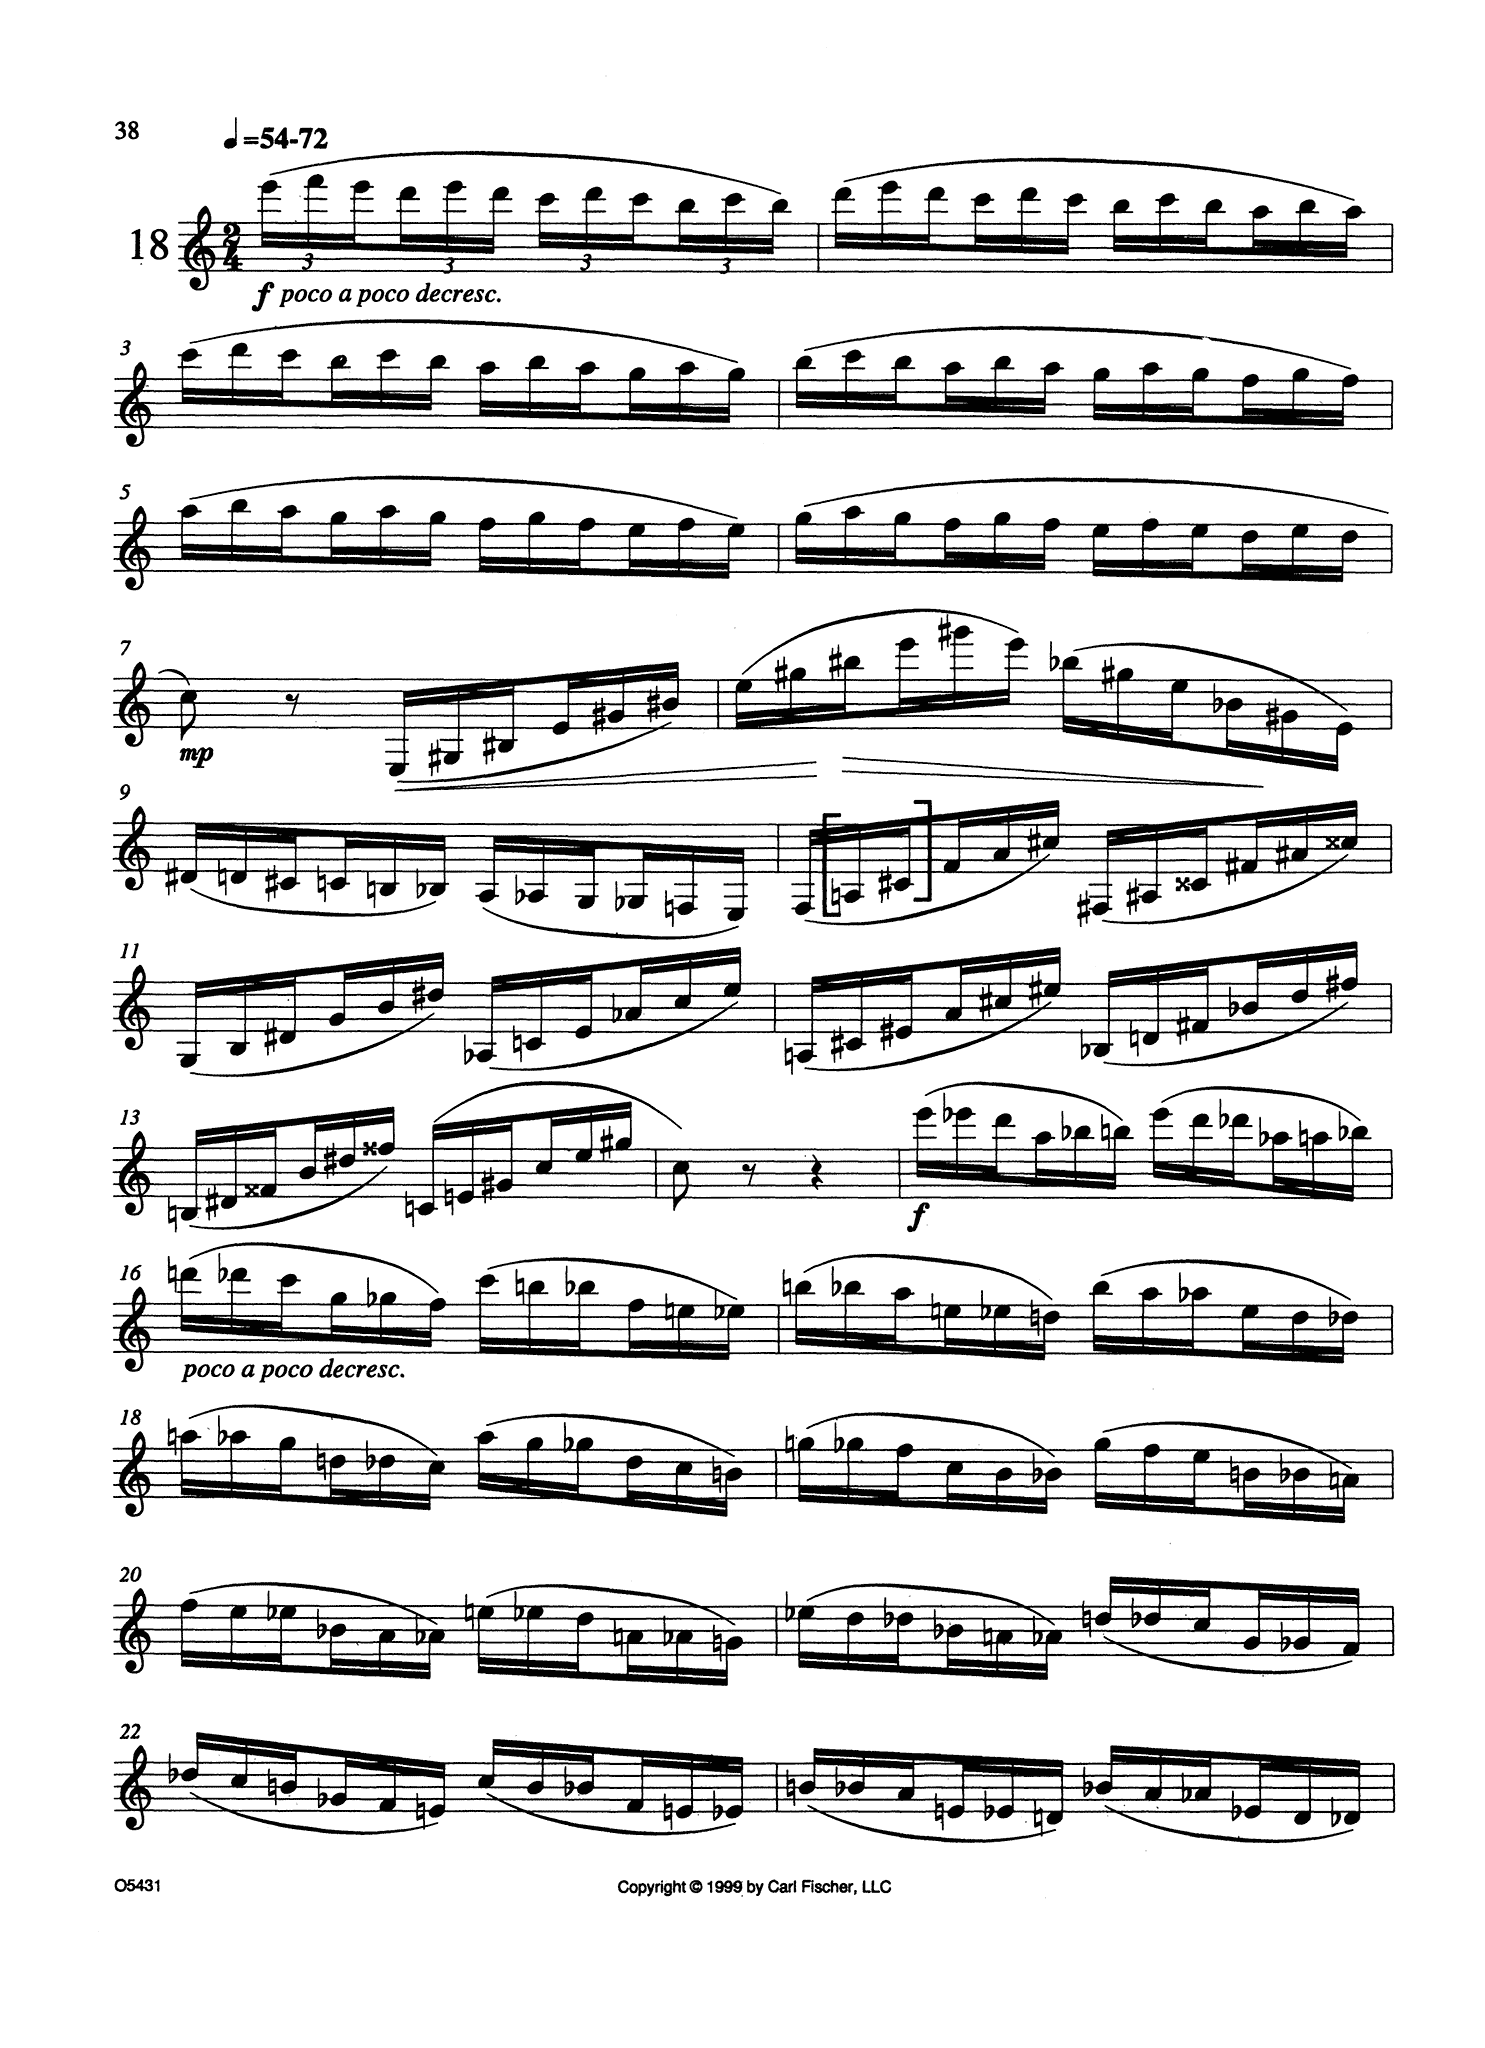 Virtuoso Velocity Studies for Clarinet Page 38